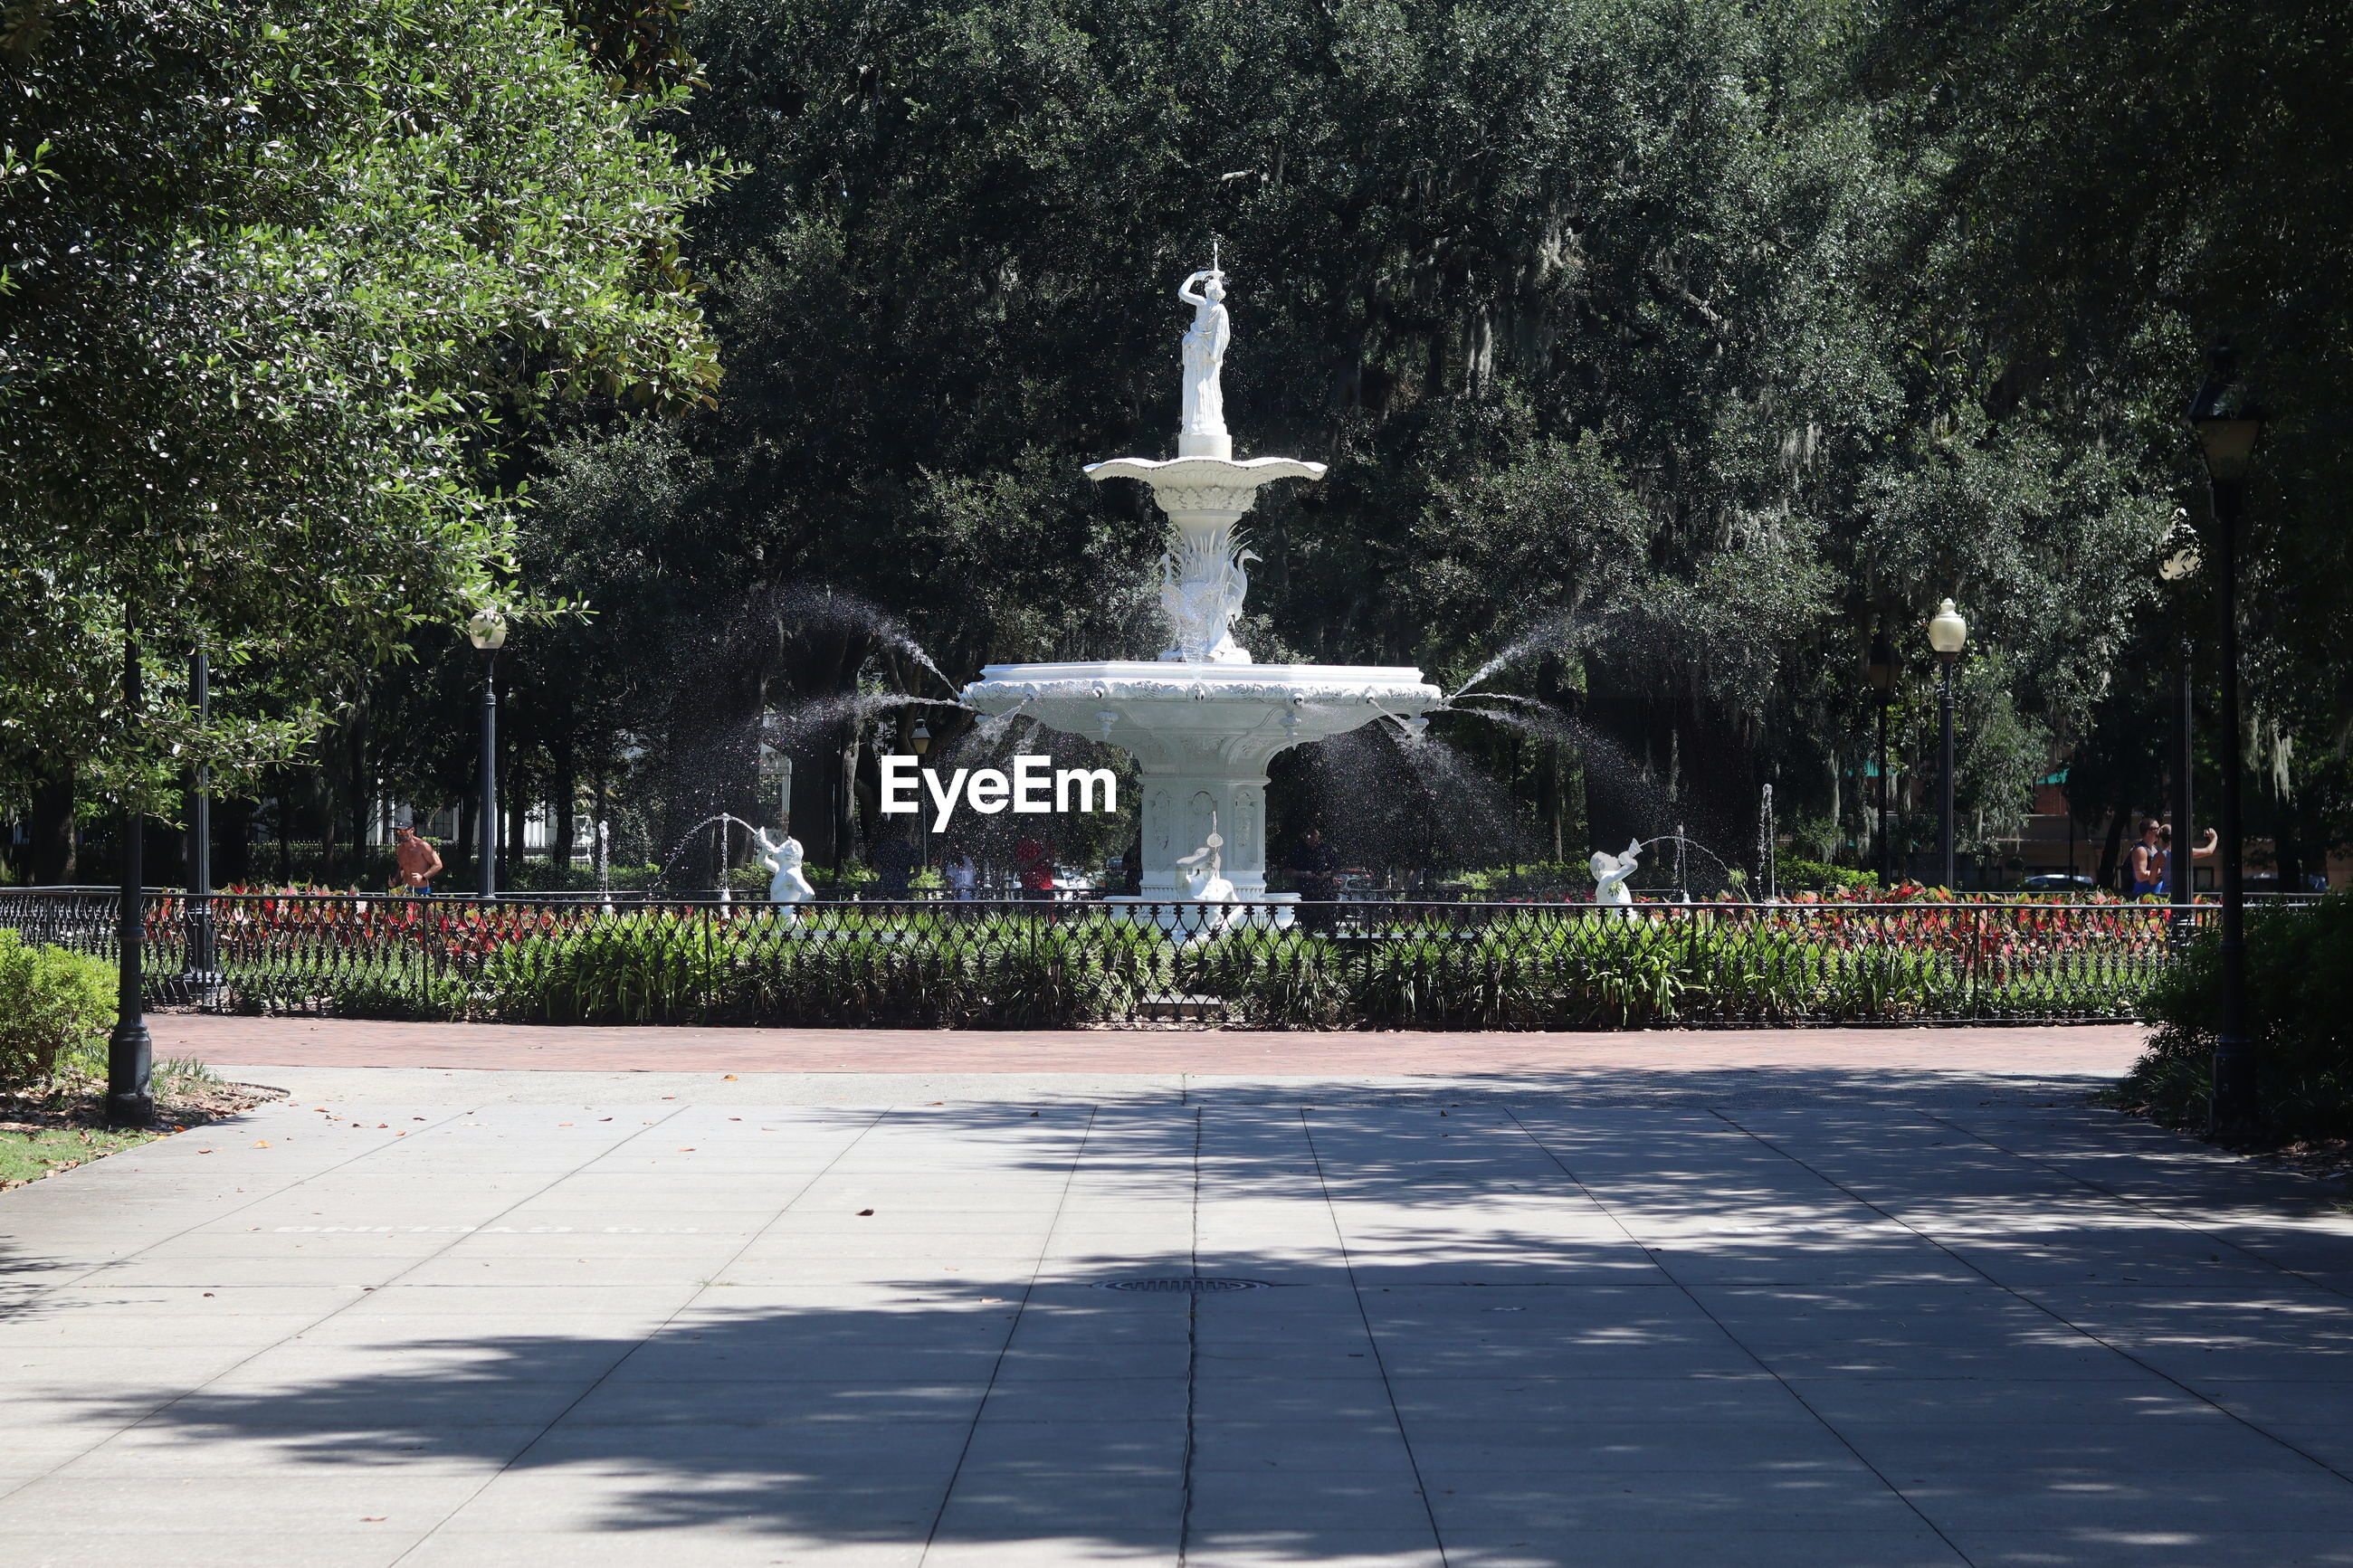 VIEW OF FOUNTAIN AT PARK